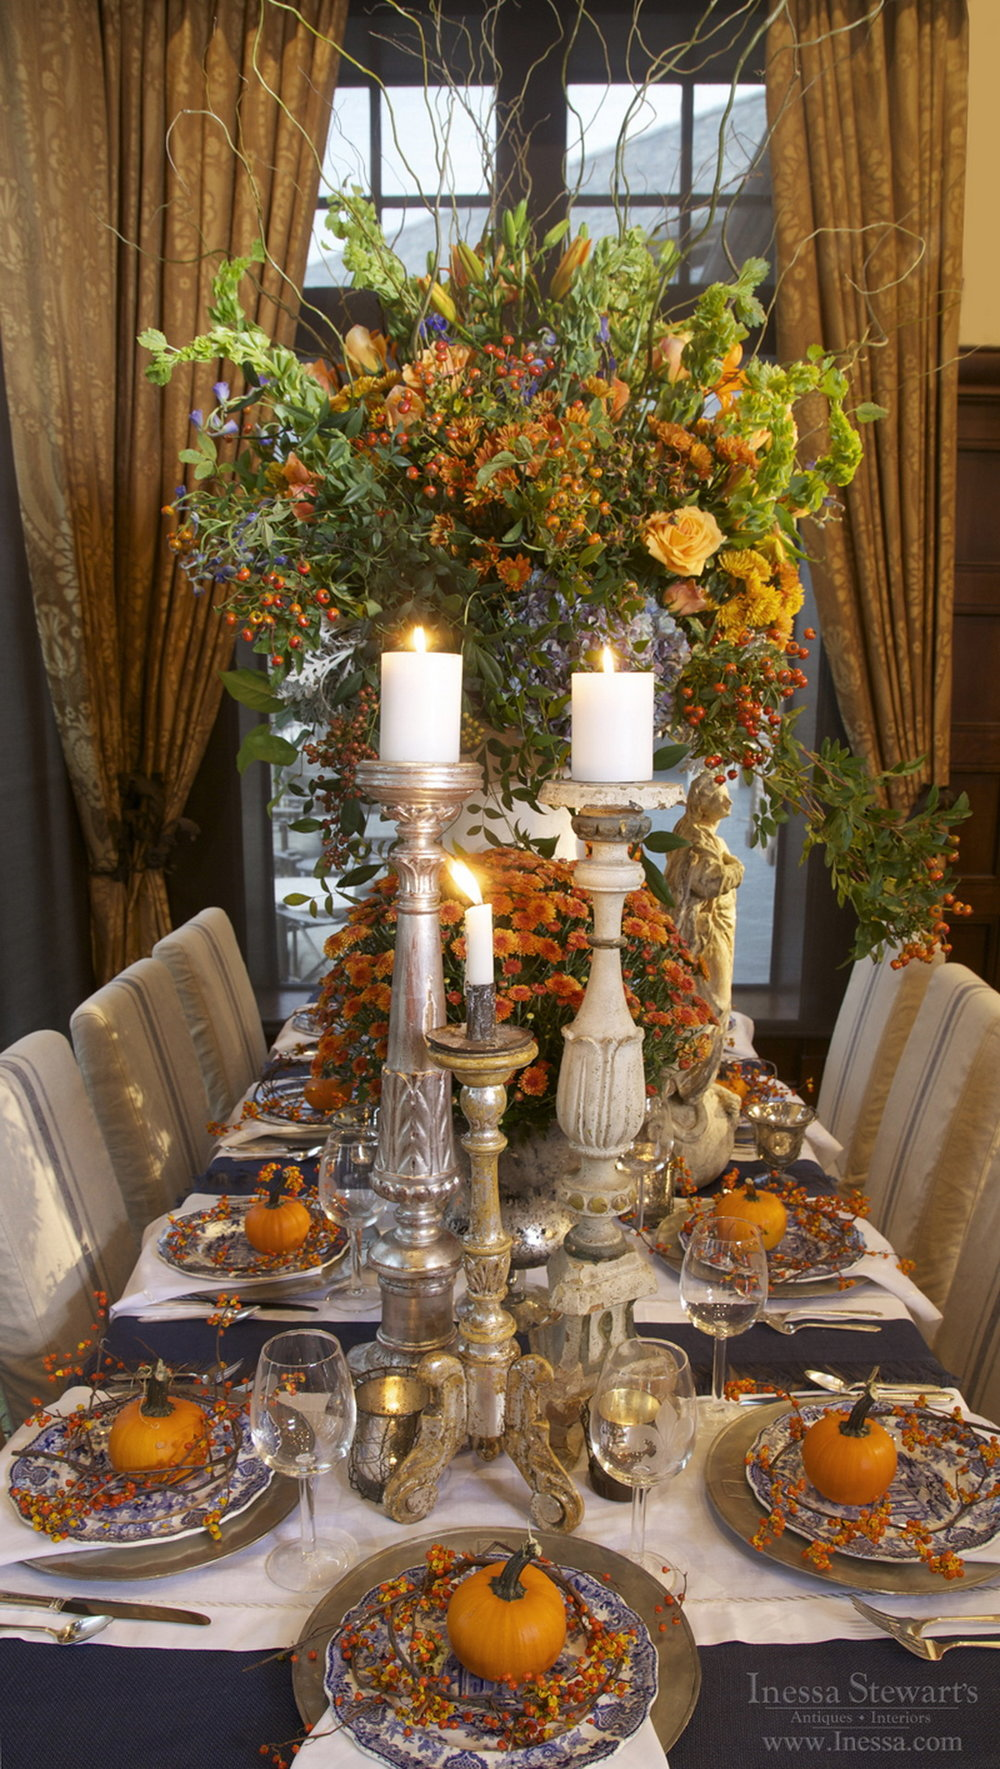 47 Simply Stunning Thanksgiving Table Settings You Have To See